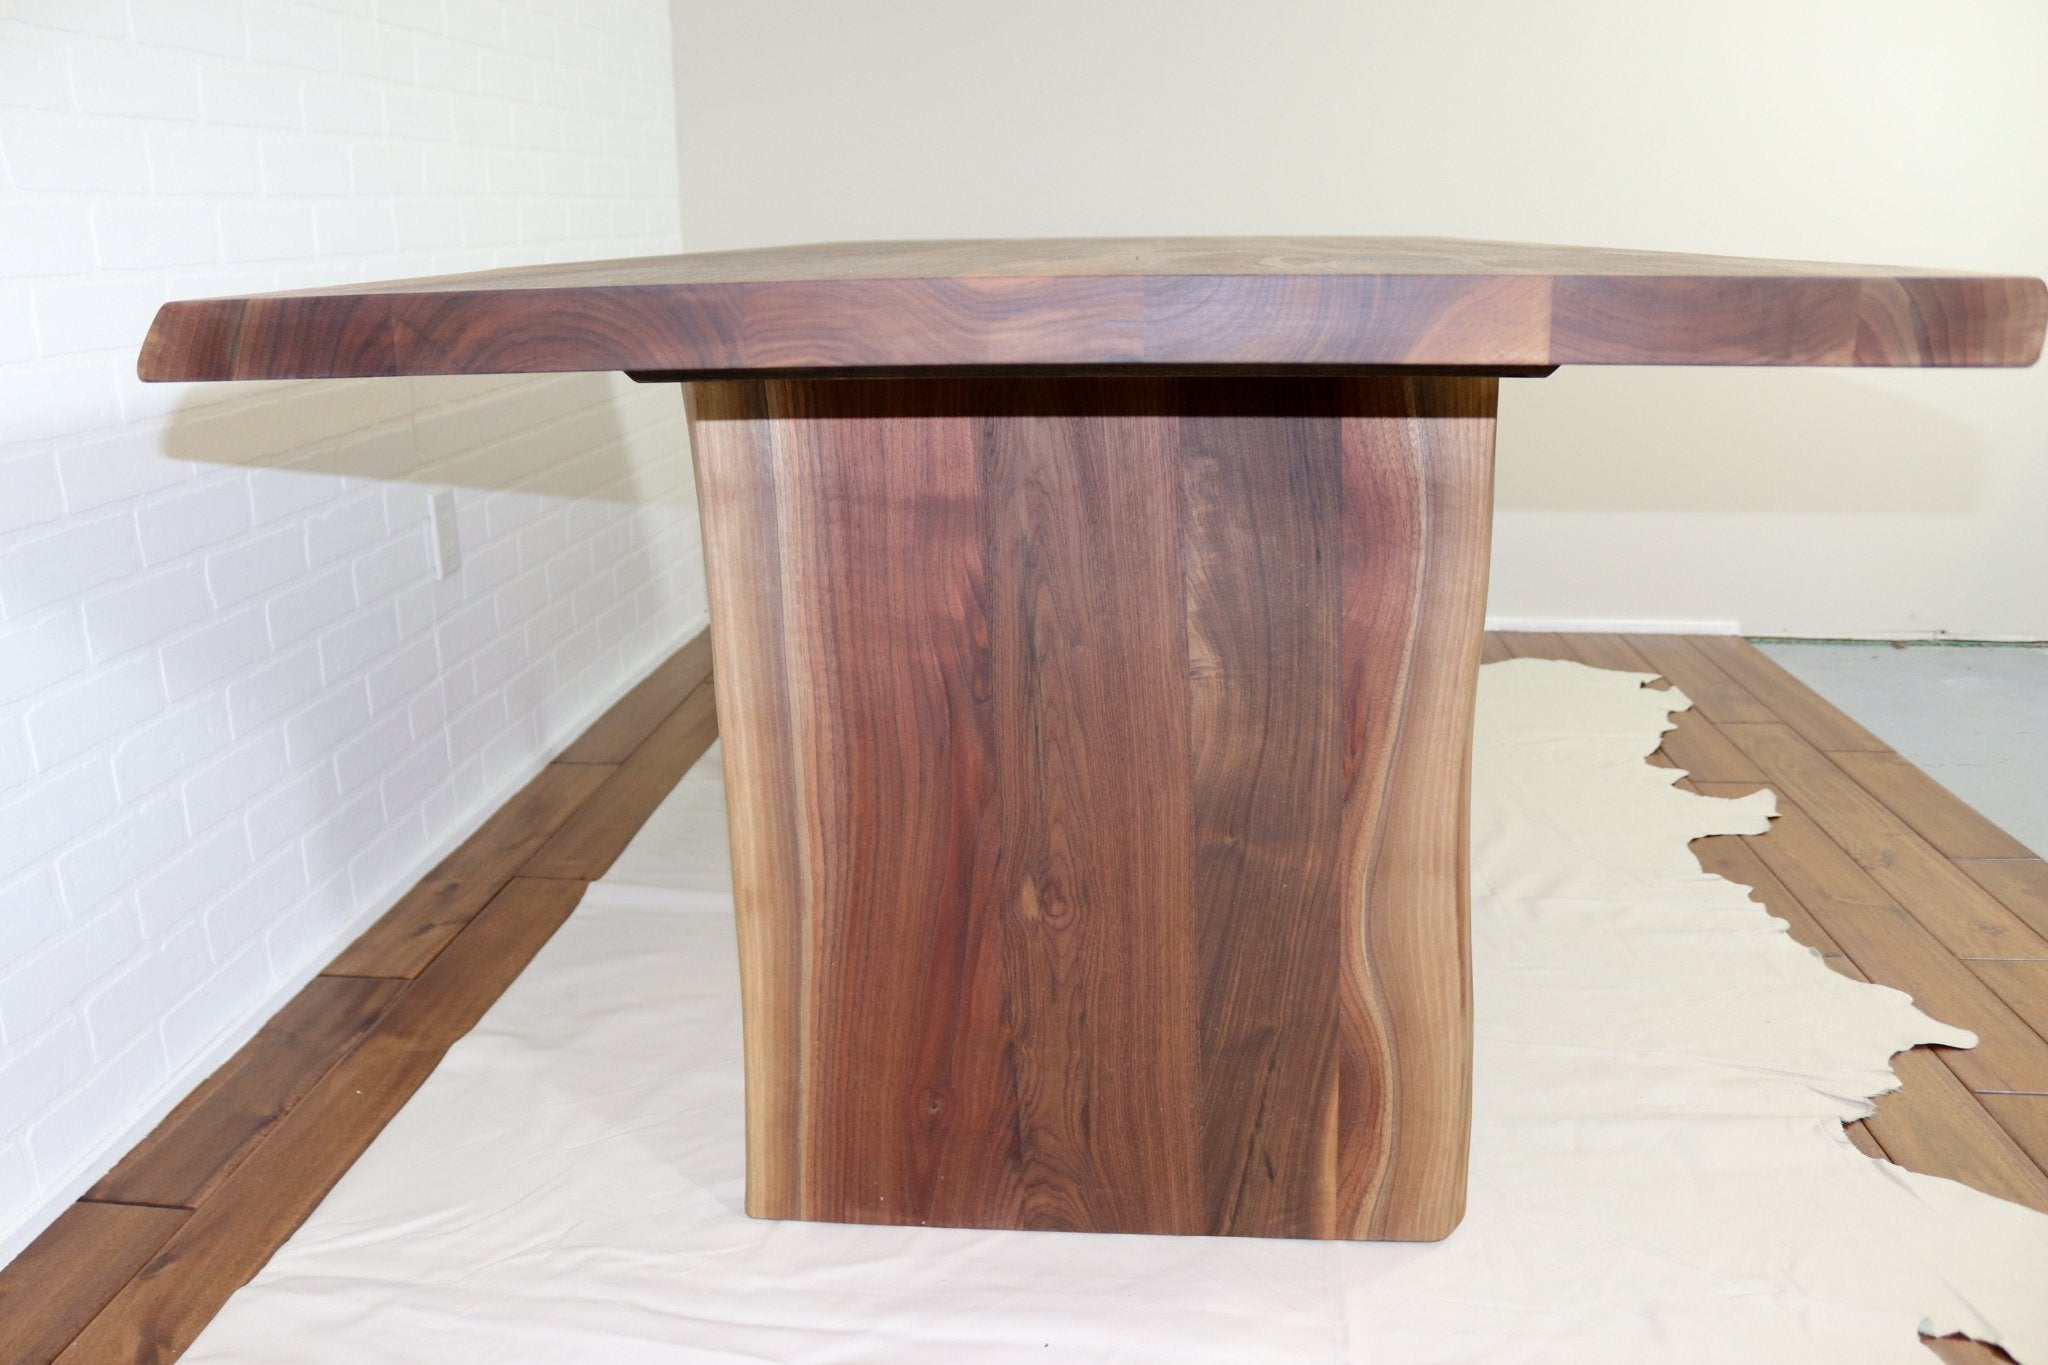 Live Edge Walnut Table - Loewen Design Studios